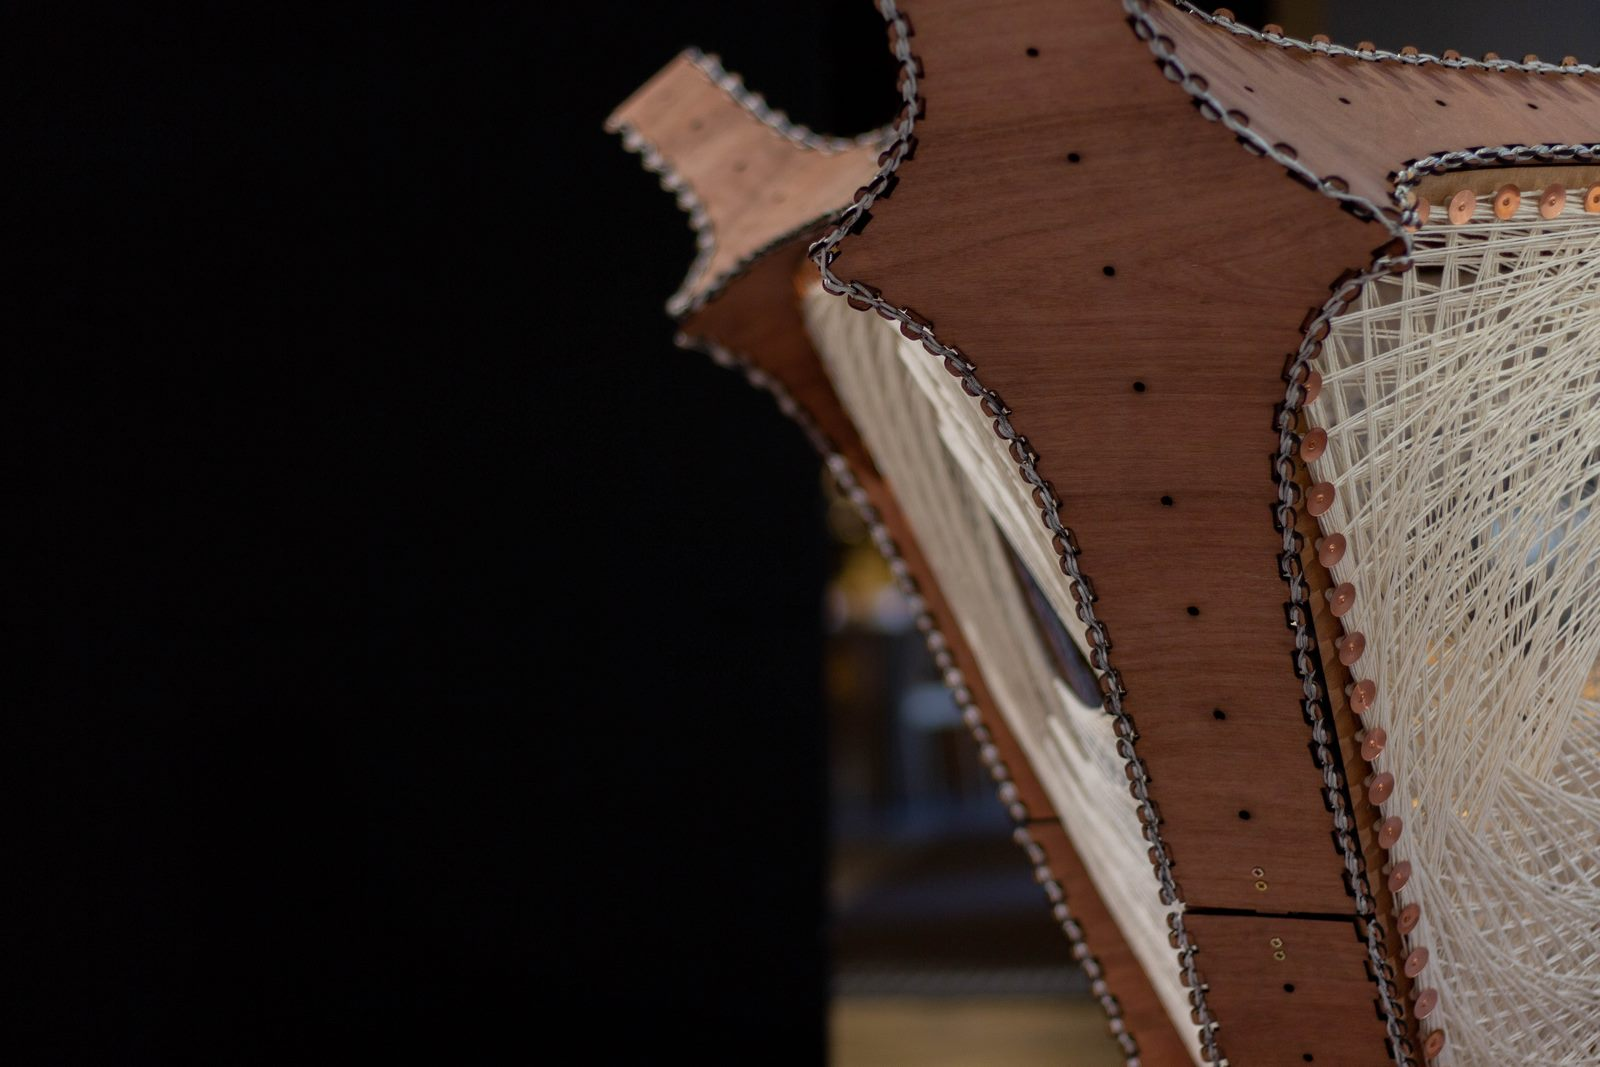 08_Bent wood and robotically woven fibre prototype_Digital Turn_The Building Centre_-¬Chris Jackson (Copiar)